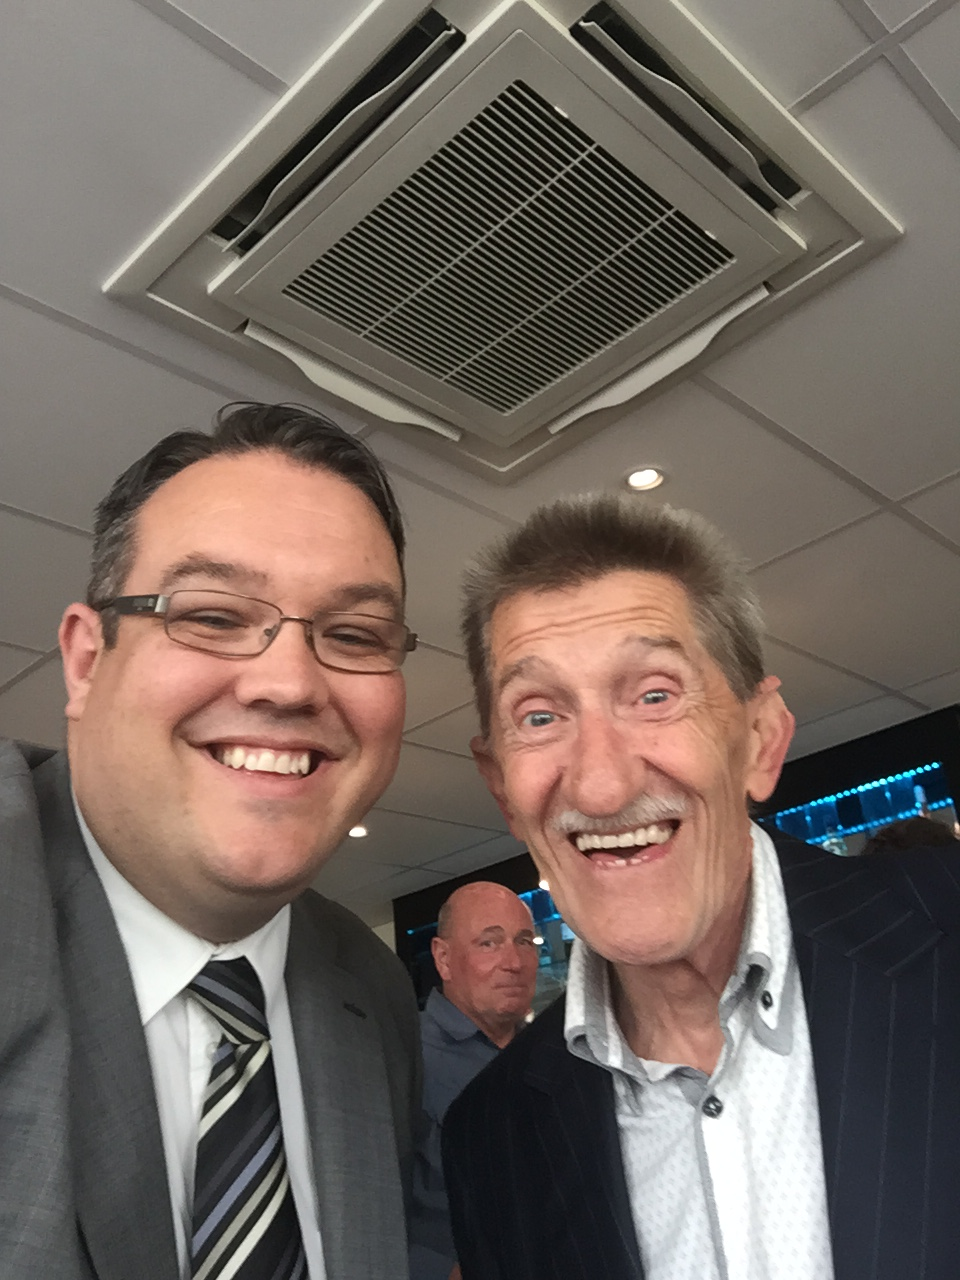 me-and-barry-chuckle